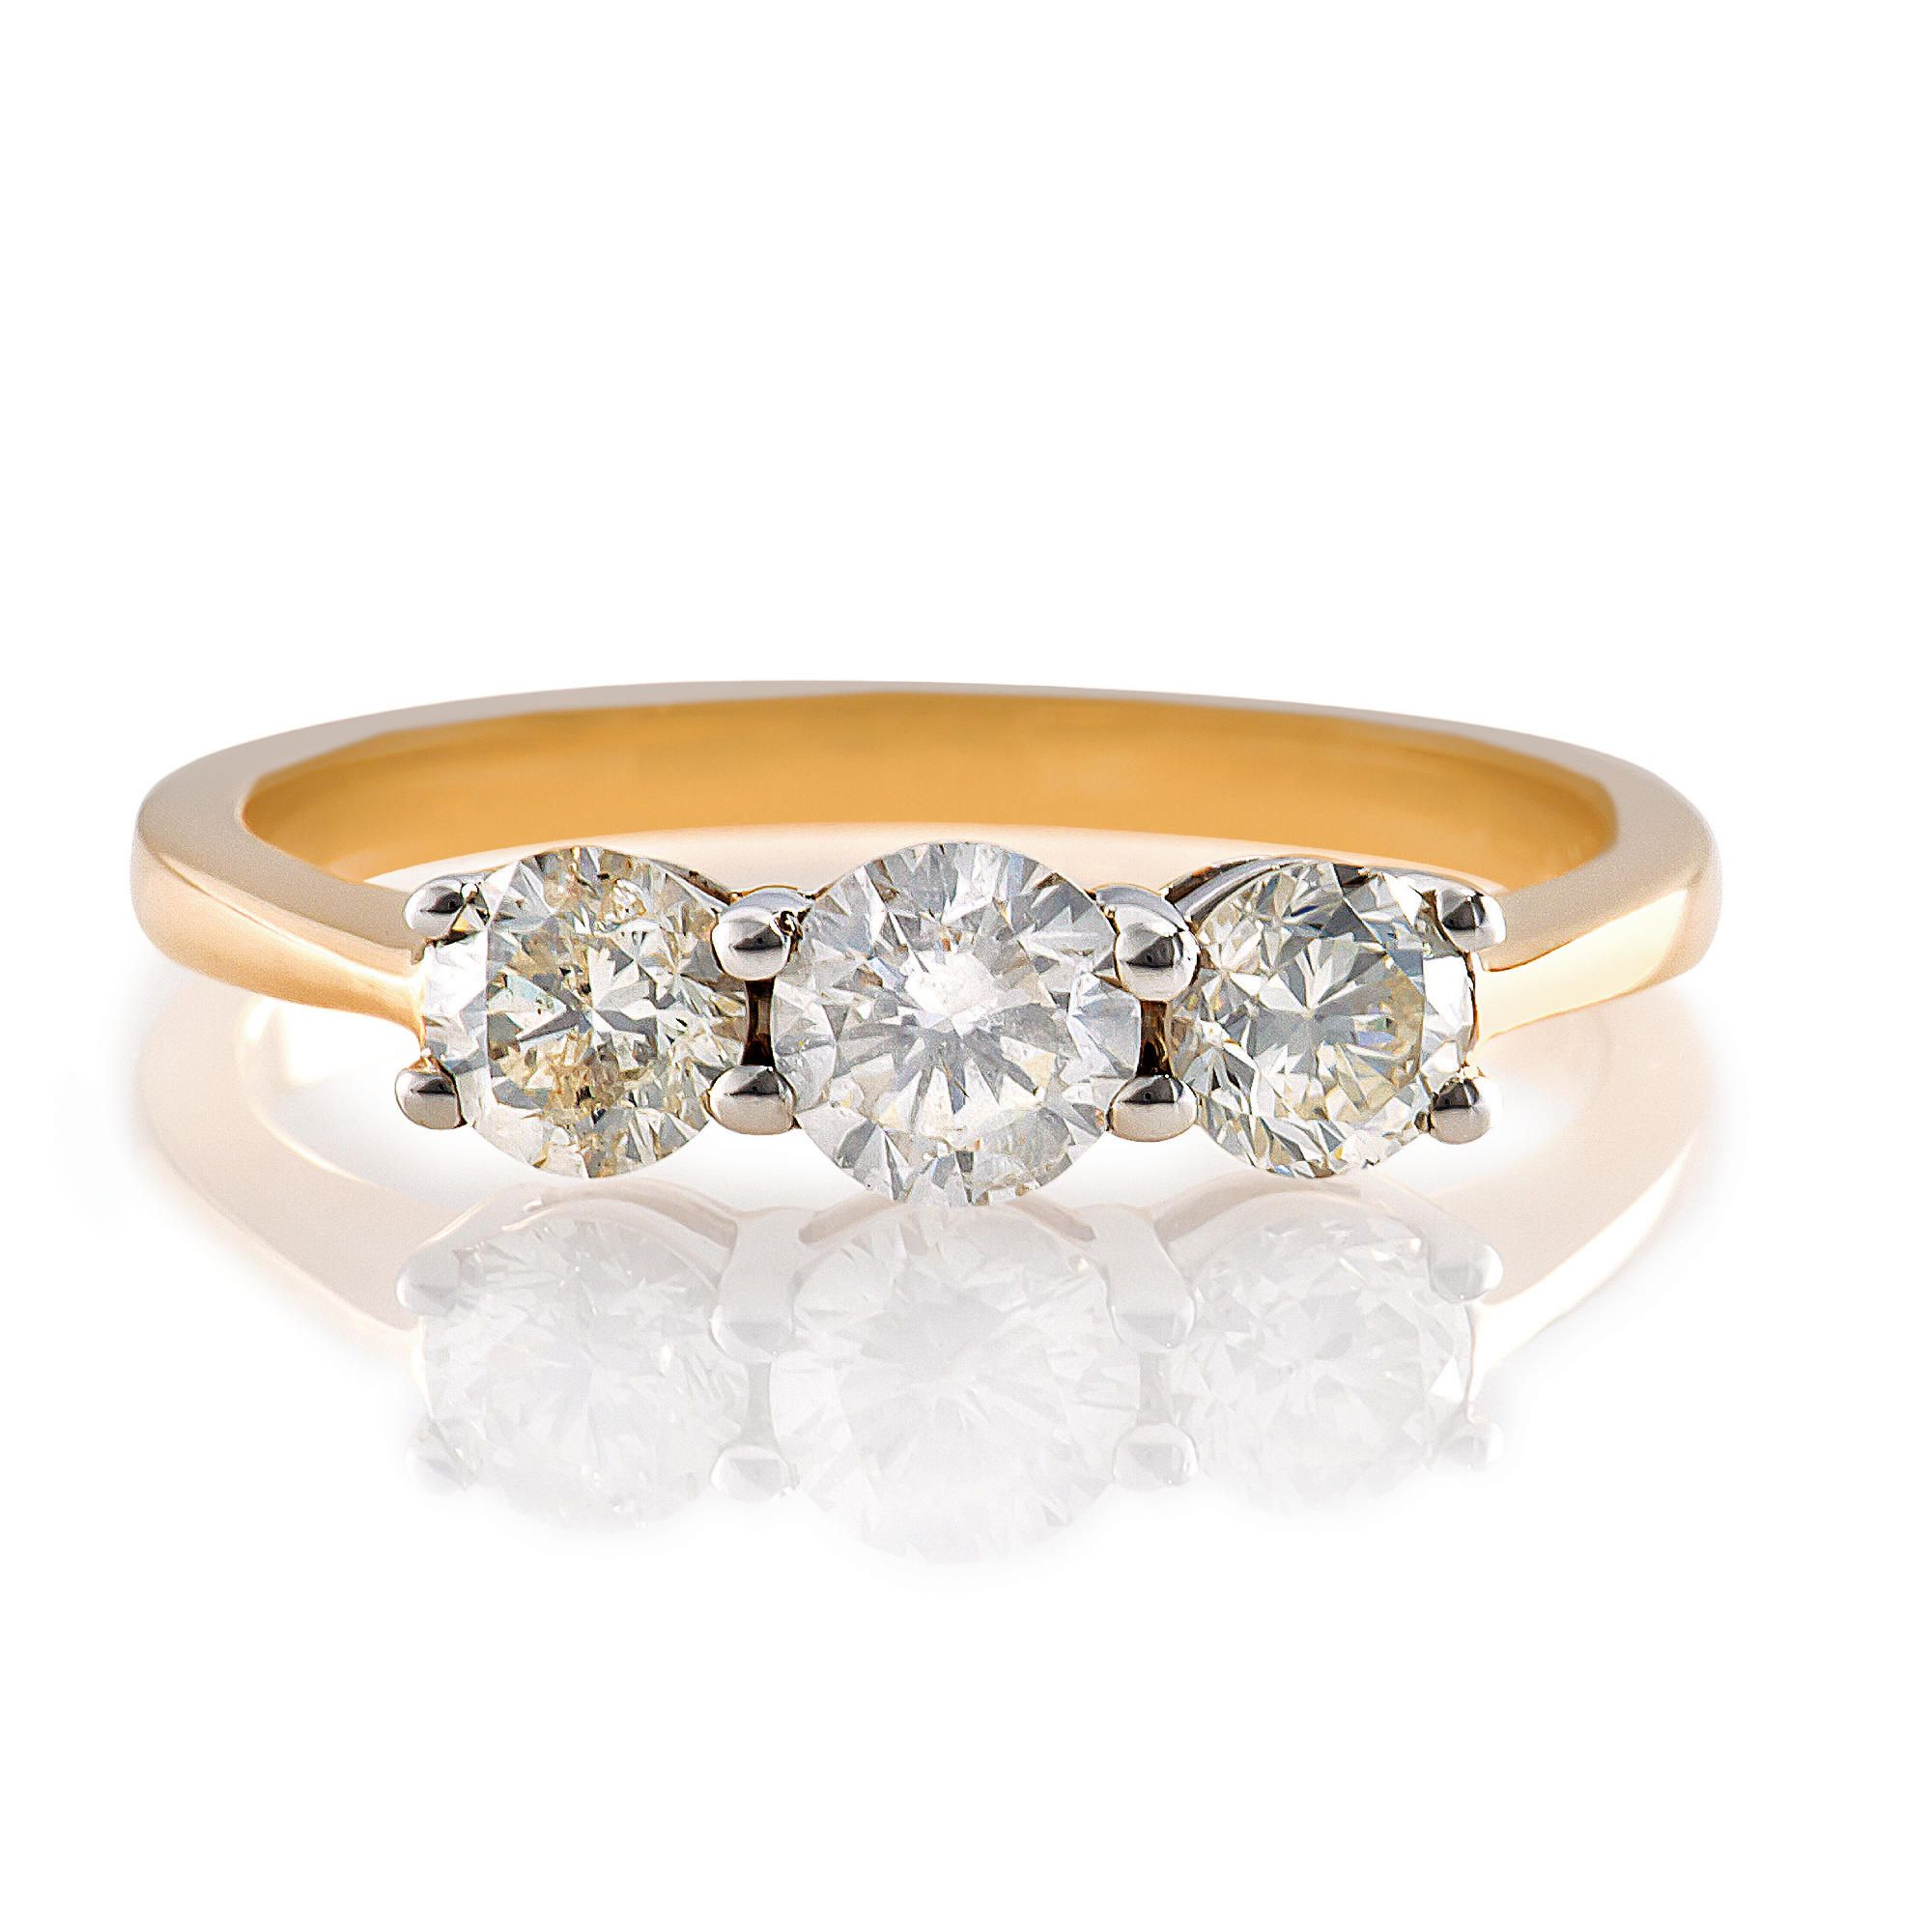 9ct Gold 1ct Diamond 3 Stone Ring, N at Tesco Direct